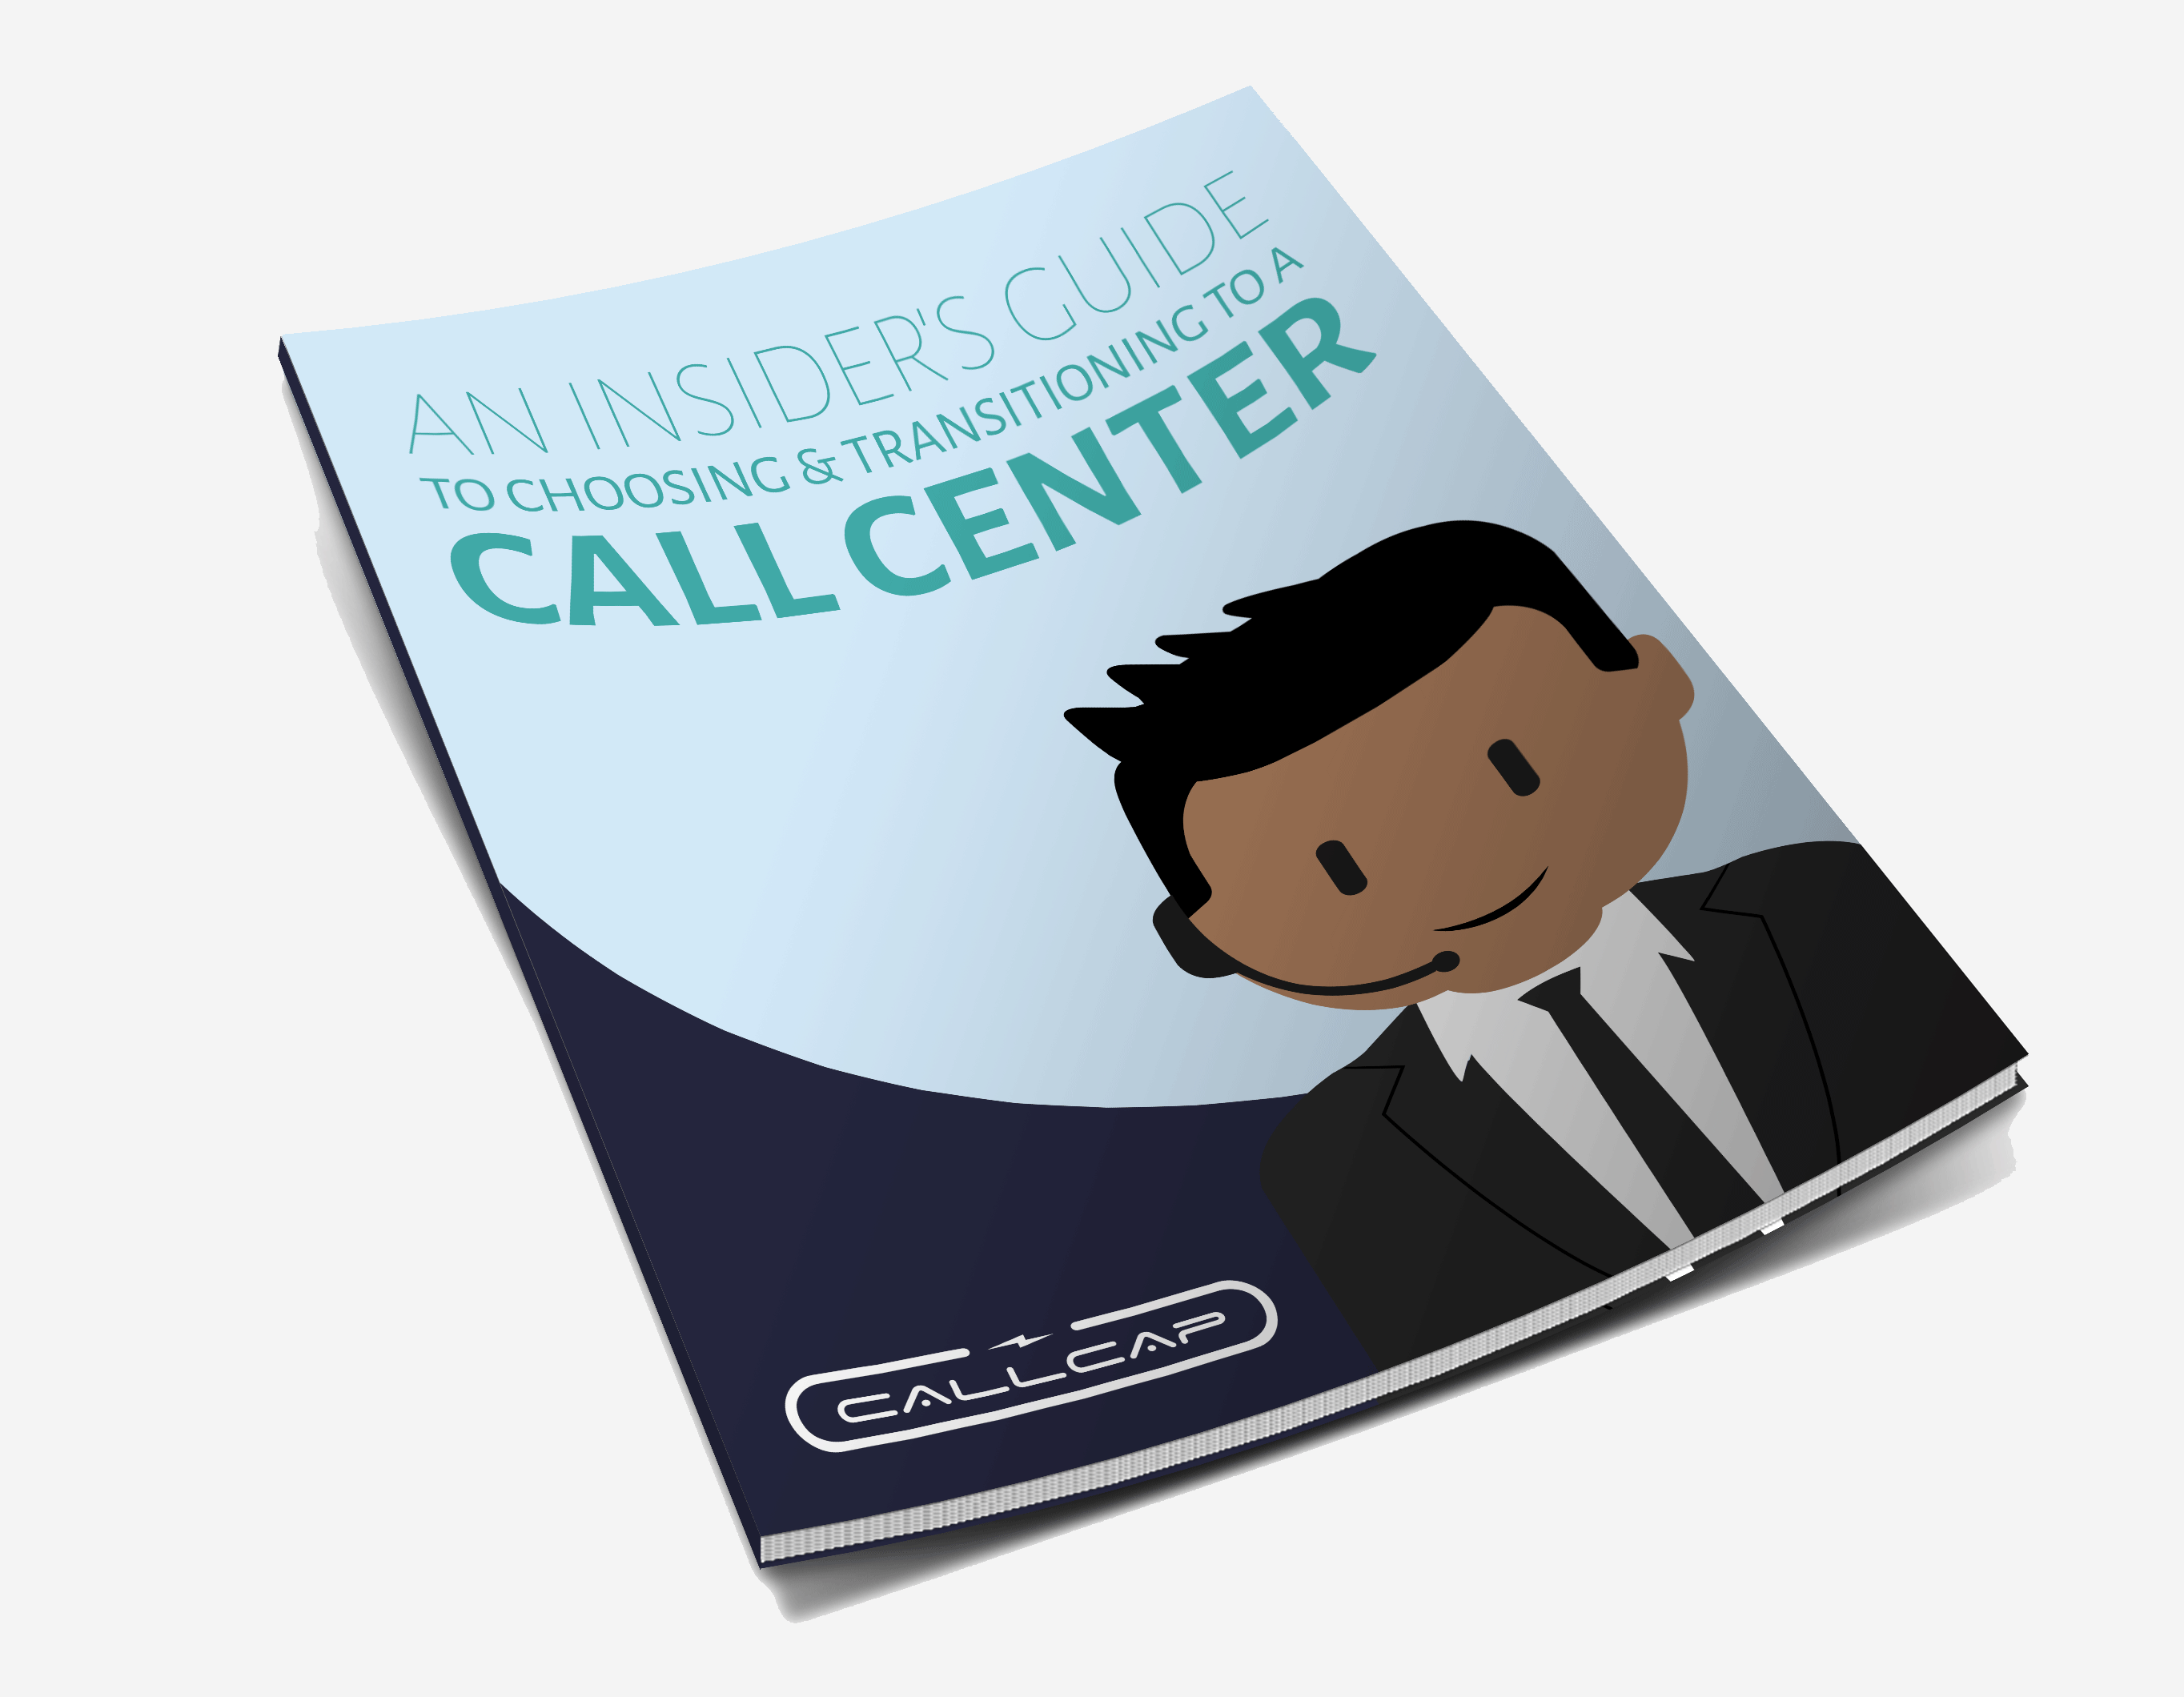 An Insider's Guide To Choosing & Transitioning To A Call Center white paper